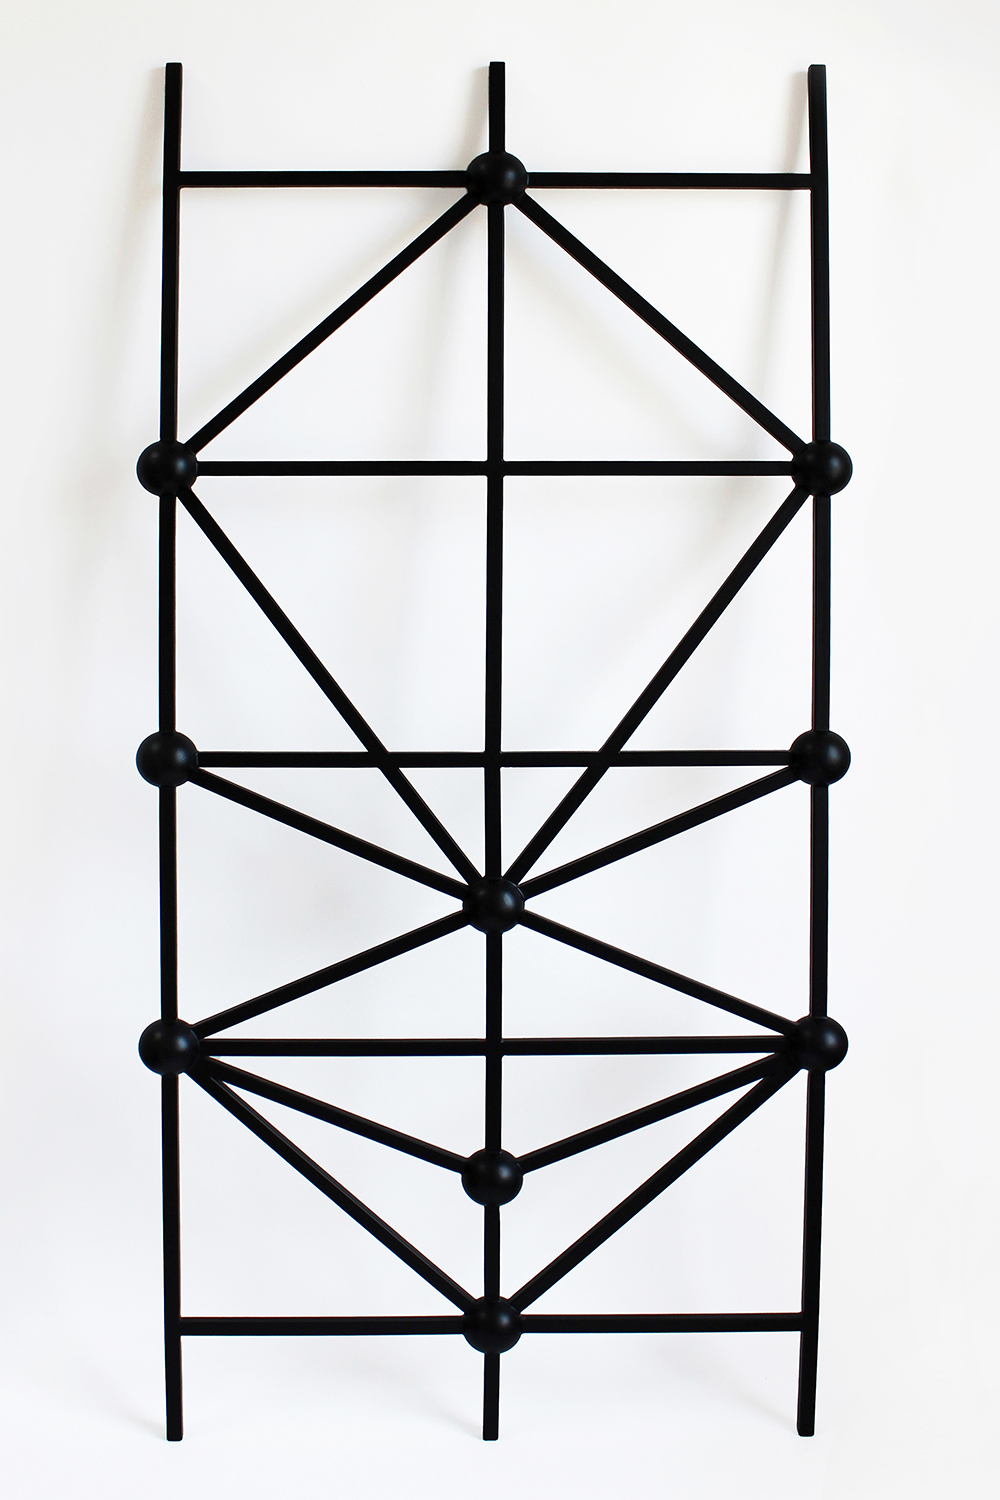 TREE OF LIFE LADDER, 2014 BLACK POWDER COATED STEEL  PDF  -  INQUIRE  +  MORE